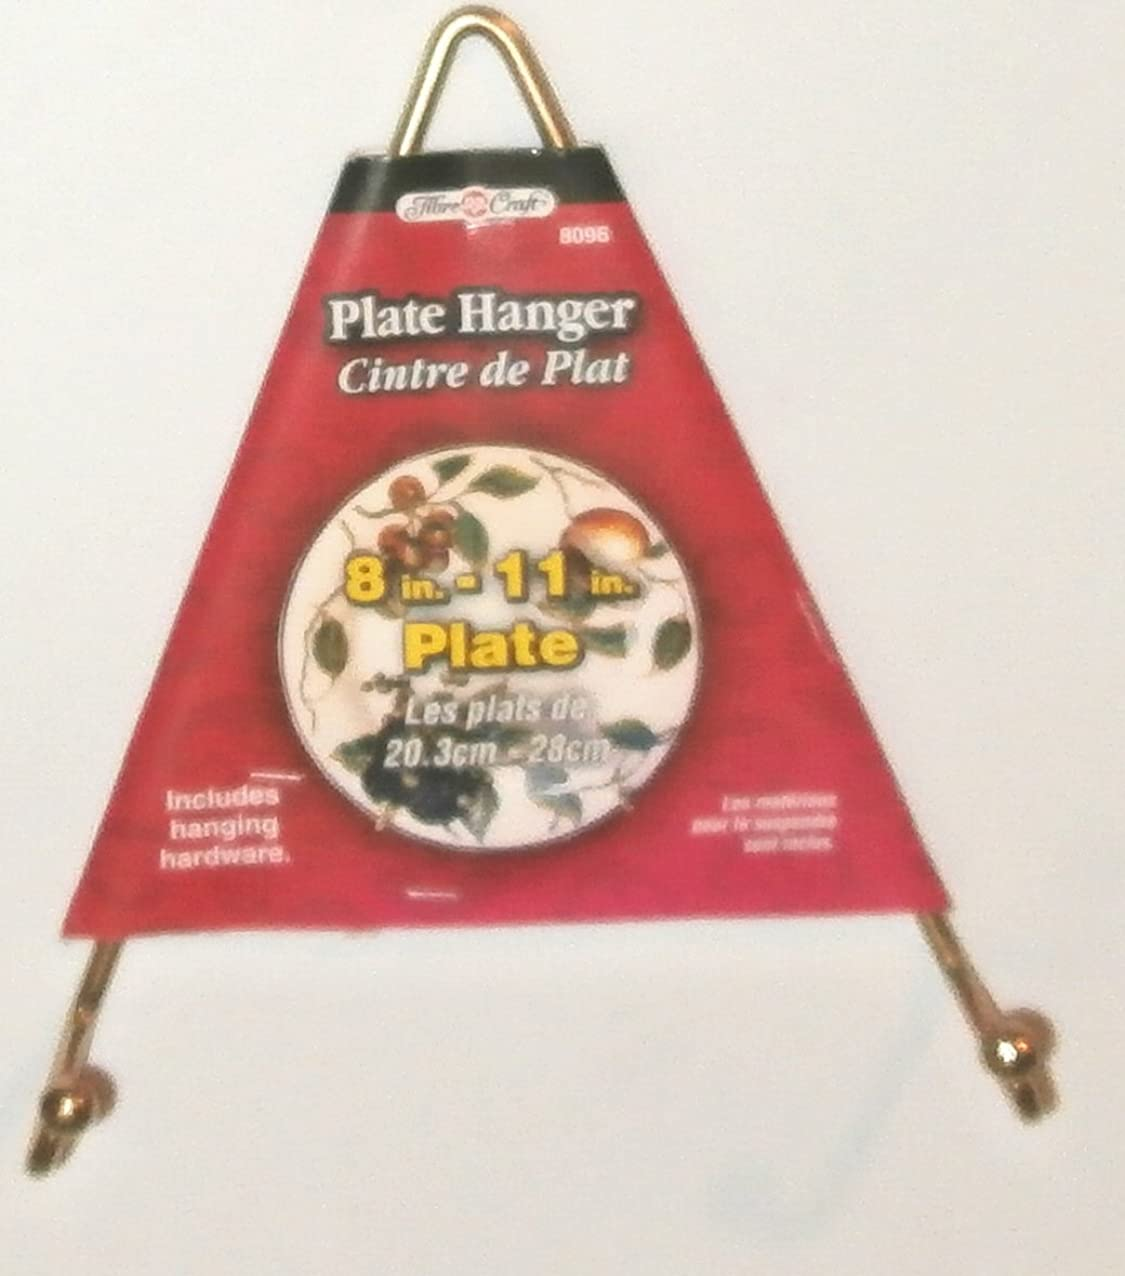 Heavy Duty Plate Hanger for 8 to 11 Inch Plates cericwkicywoi378